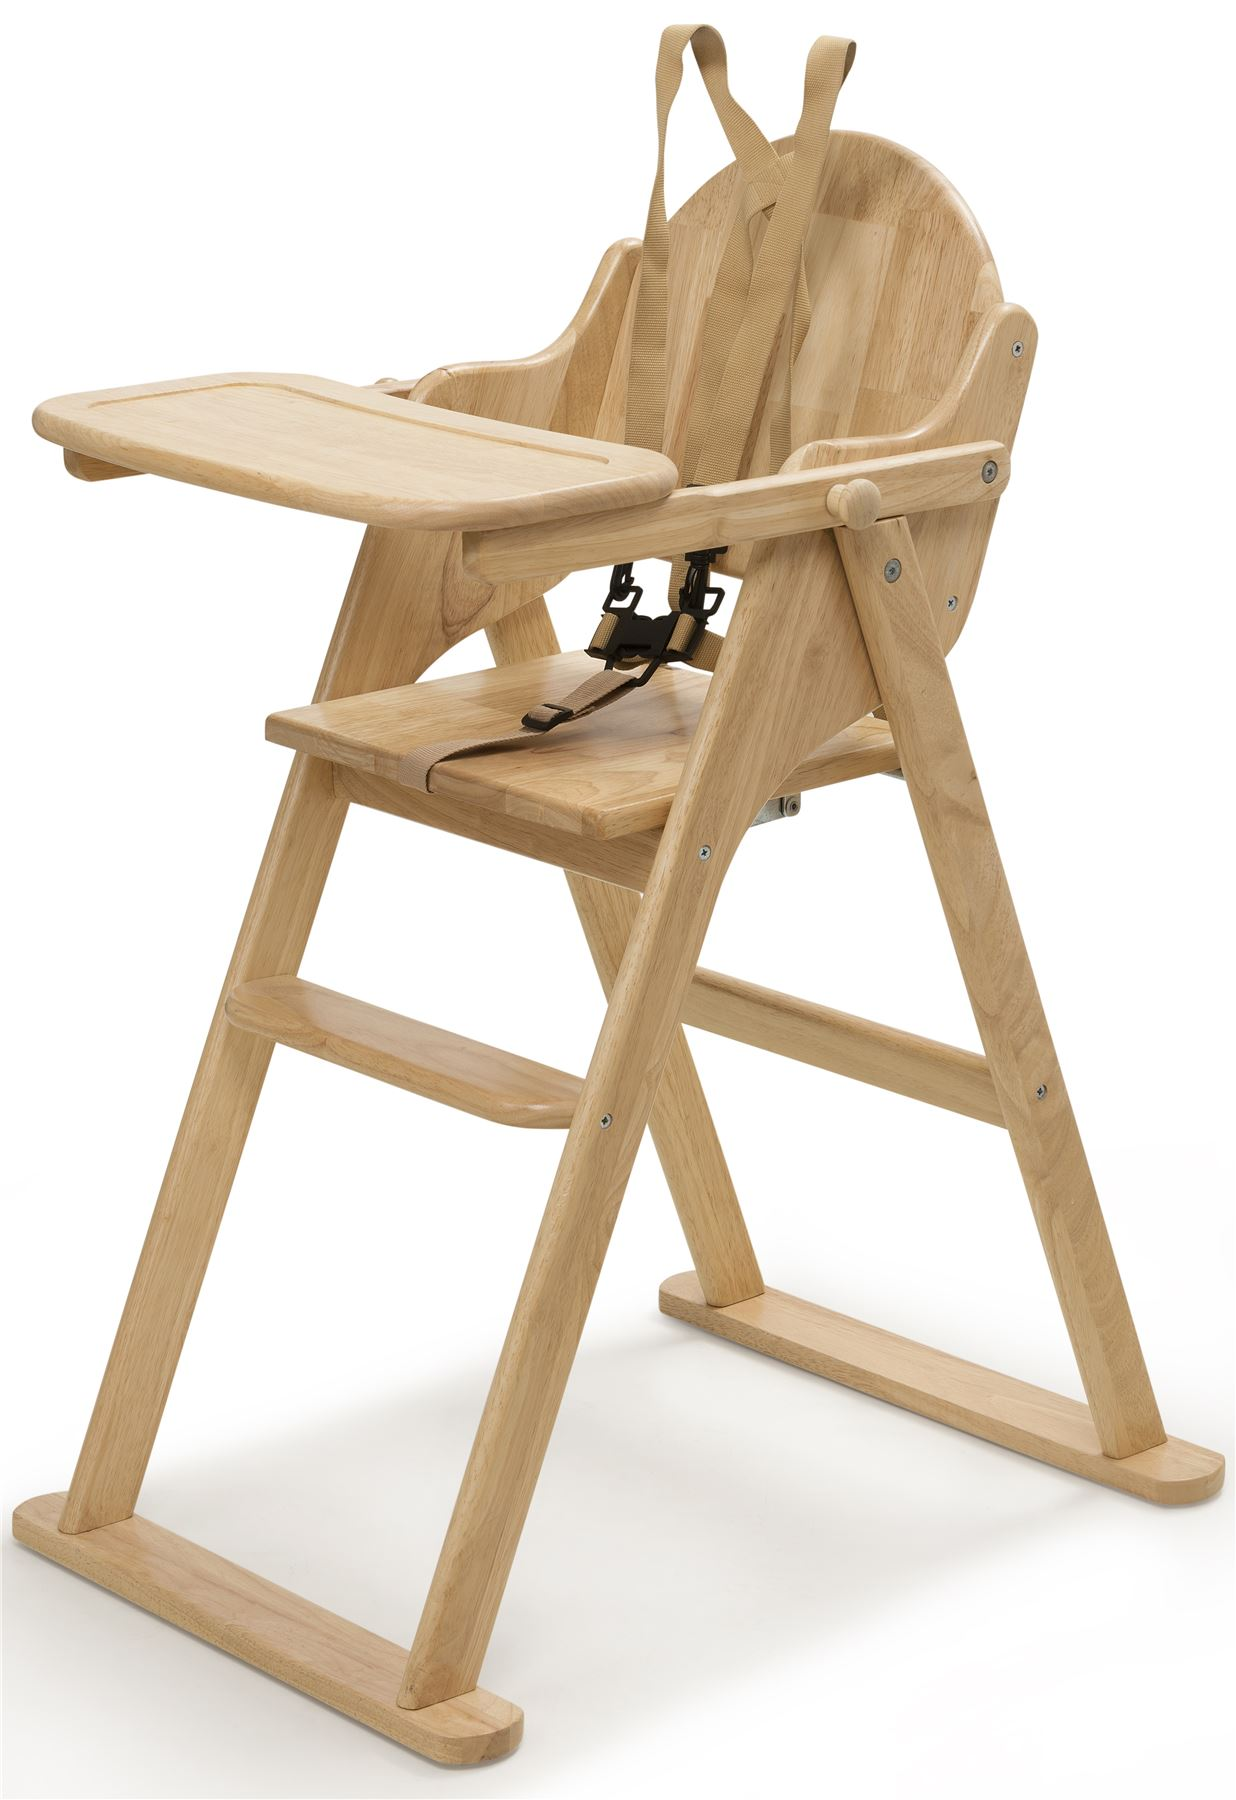 Wooden High Chairs For Babies Details About Safetots Putaway Folding Wooden Highchair Easy Store Baby Wood High Chair